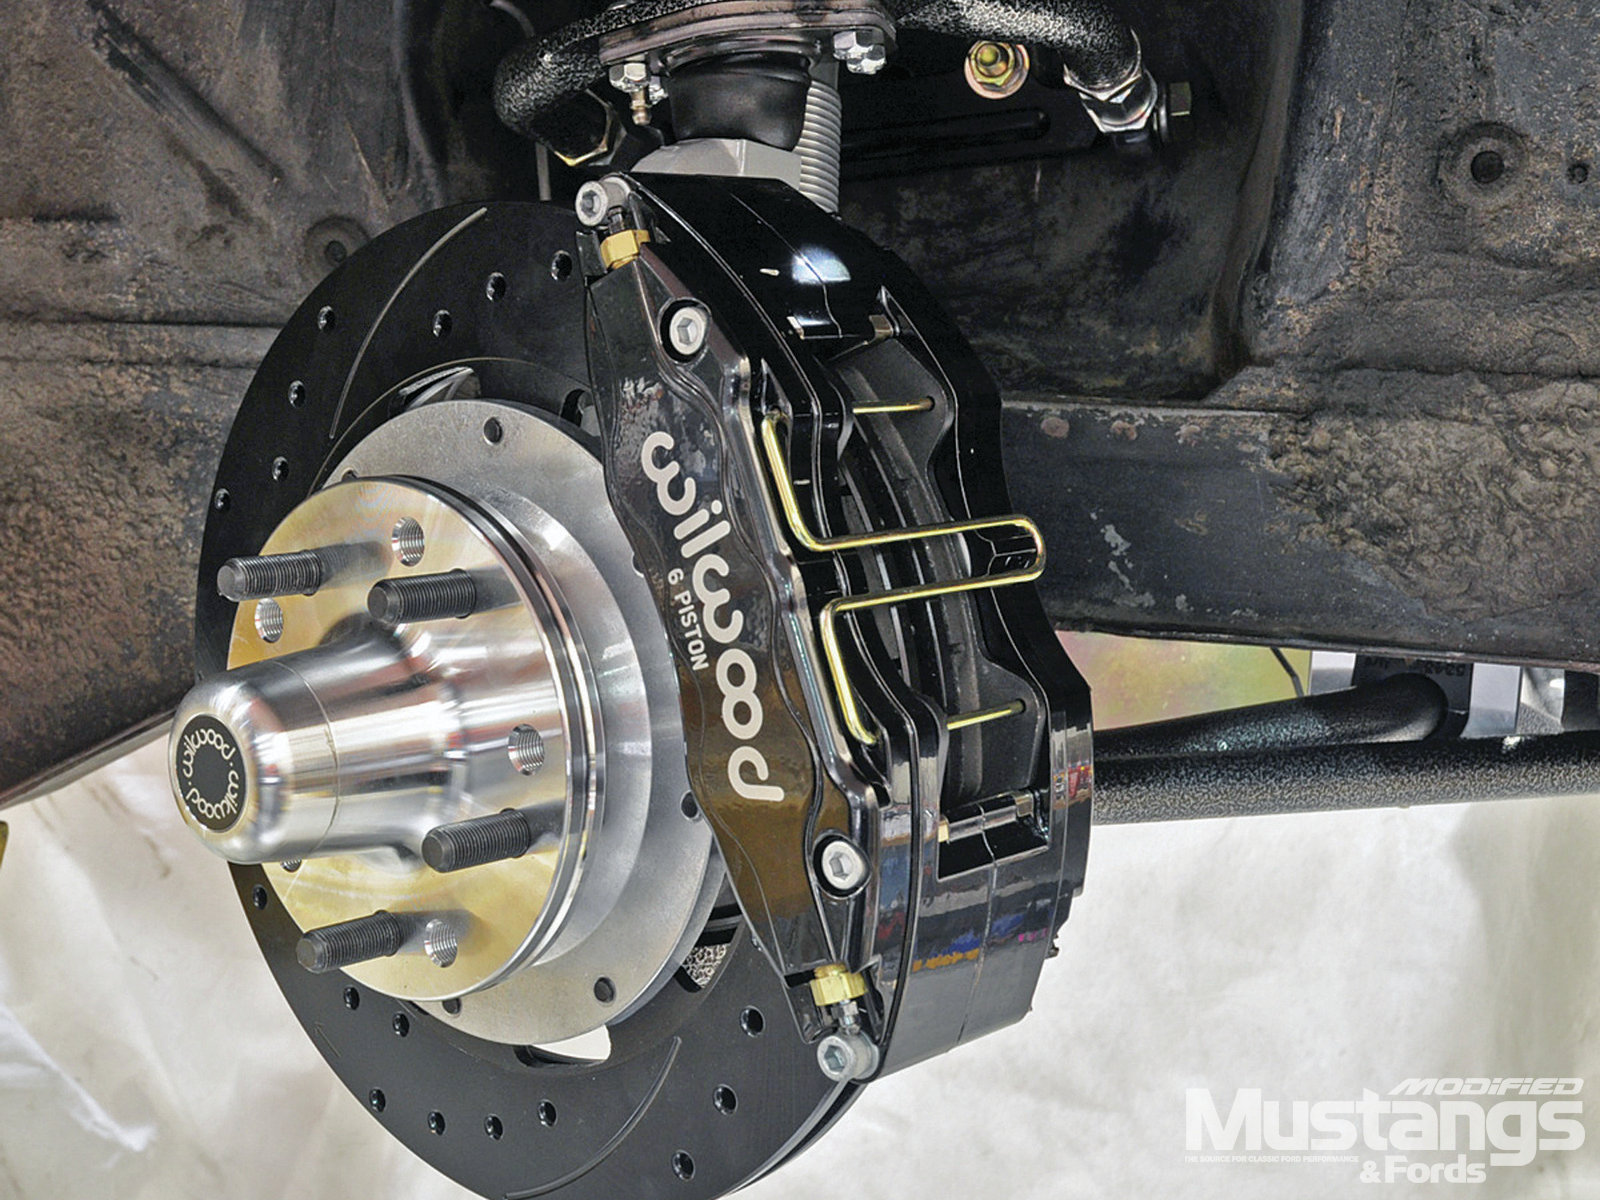 TCP Products Wilwood Disc Brake Upgrade .JPG